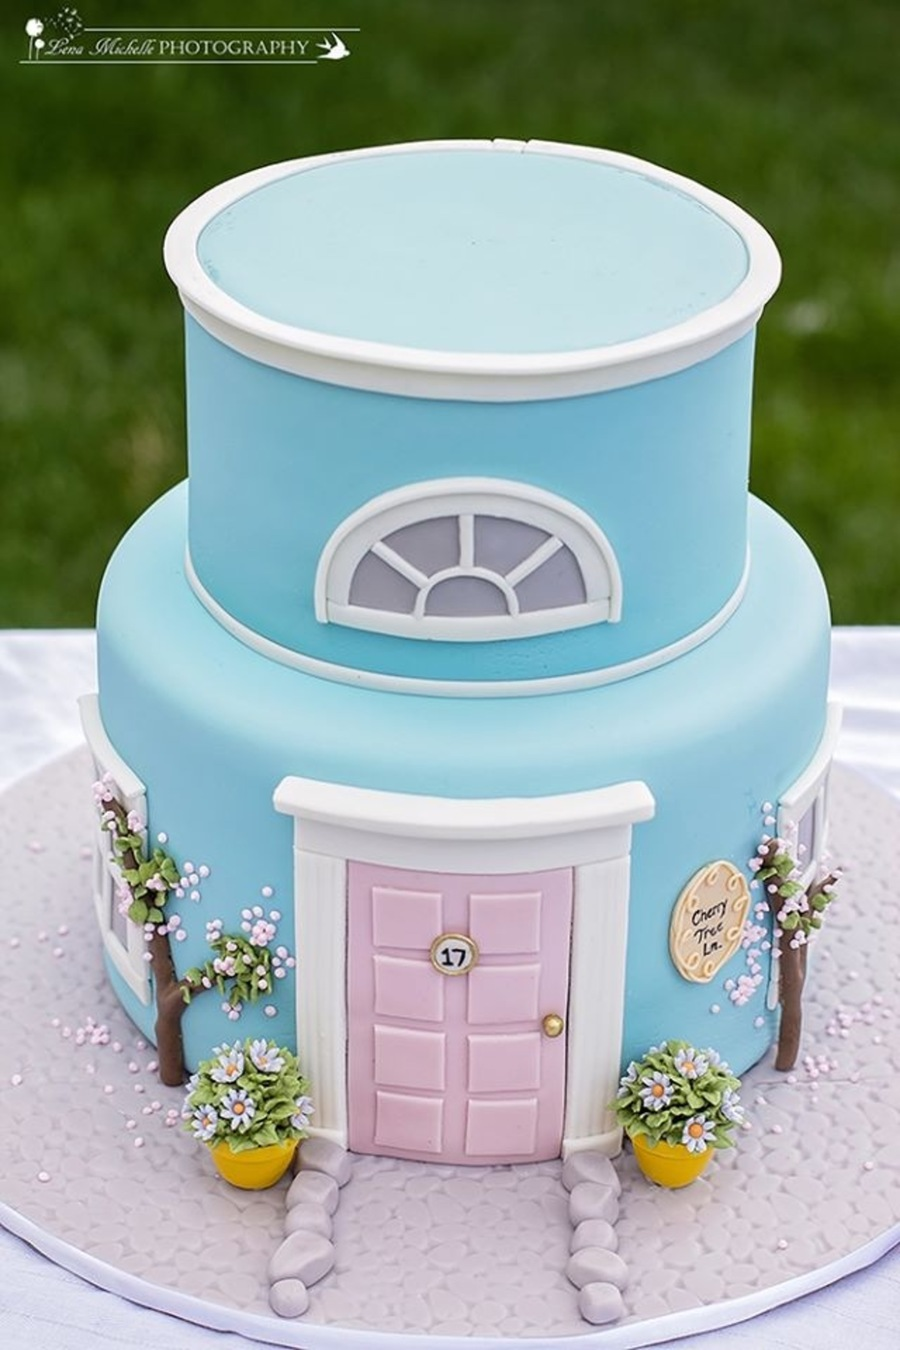 Mary Poppins Themed Cake 17 Cherry Tree Lane Whimsical